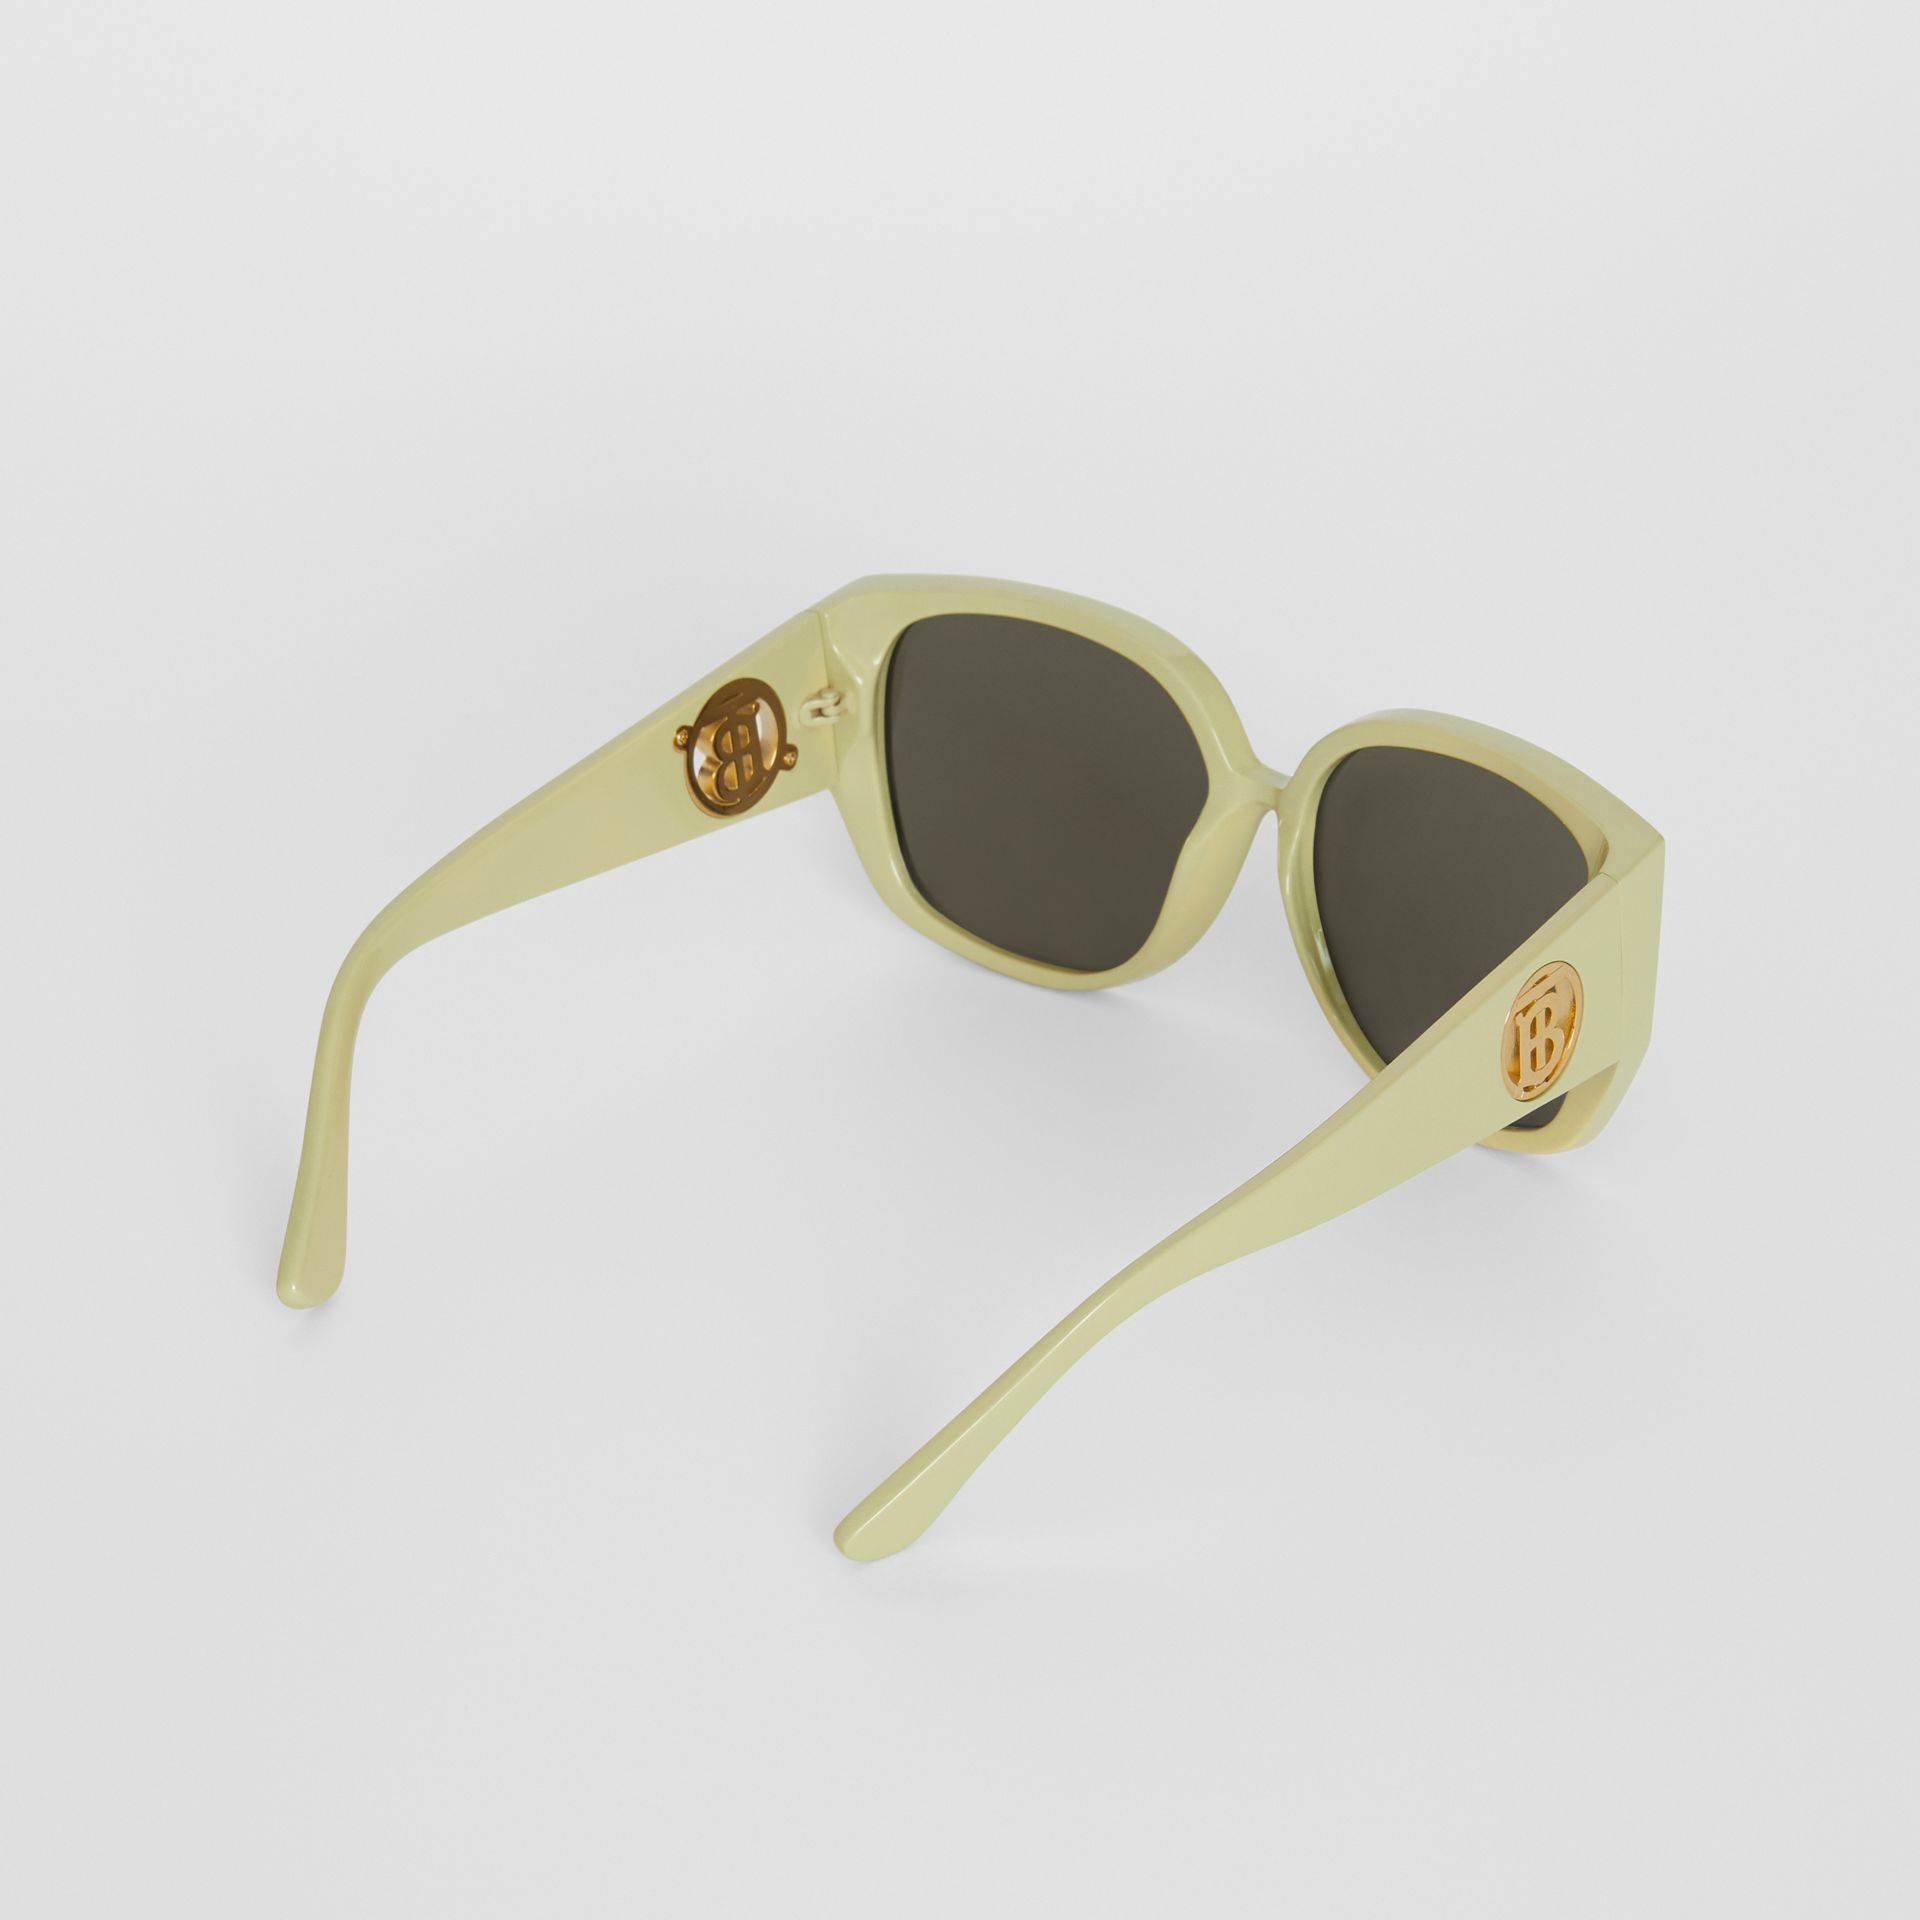 Oversized Butterfly Frame Sunglasses in Pistachio - Women | Burberry United States - gallery image 4